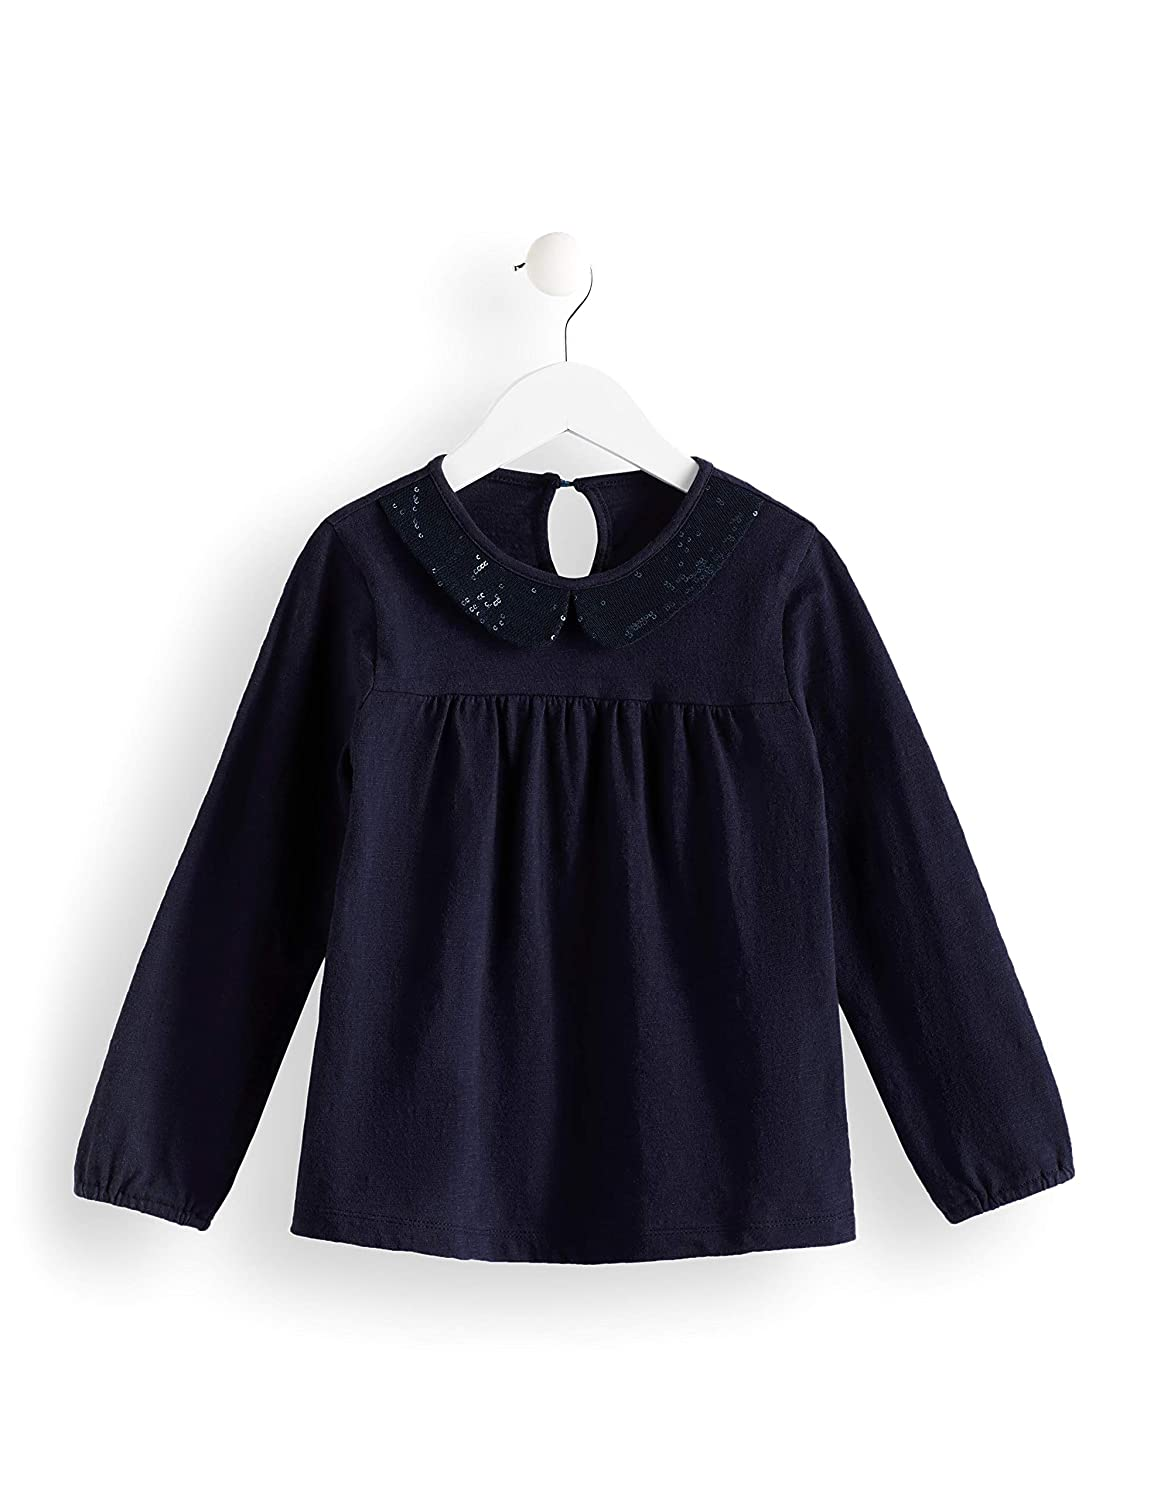 RED WAGON Girl's Long Sleeve Party Top AM1825B